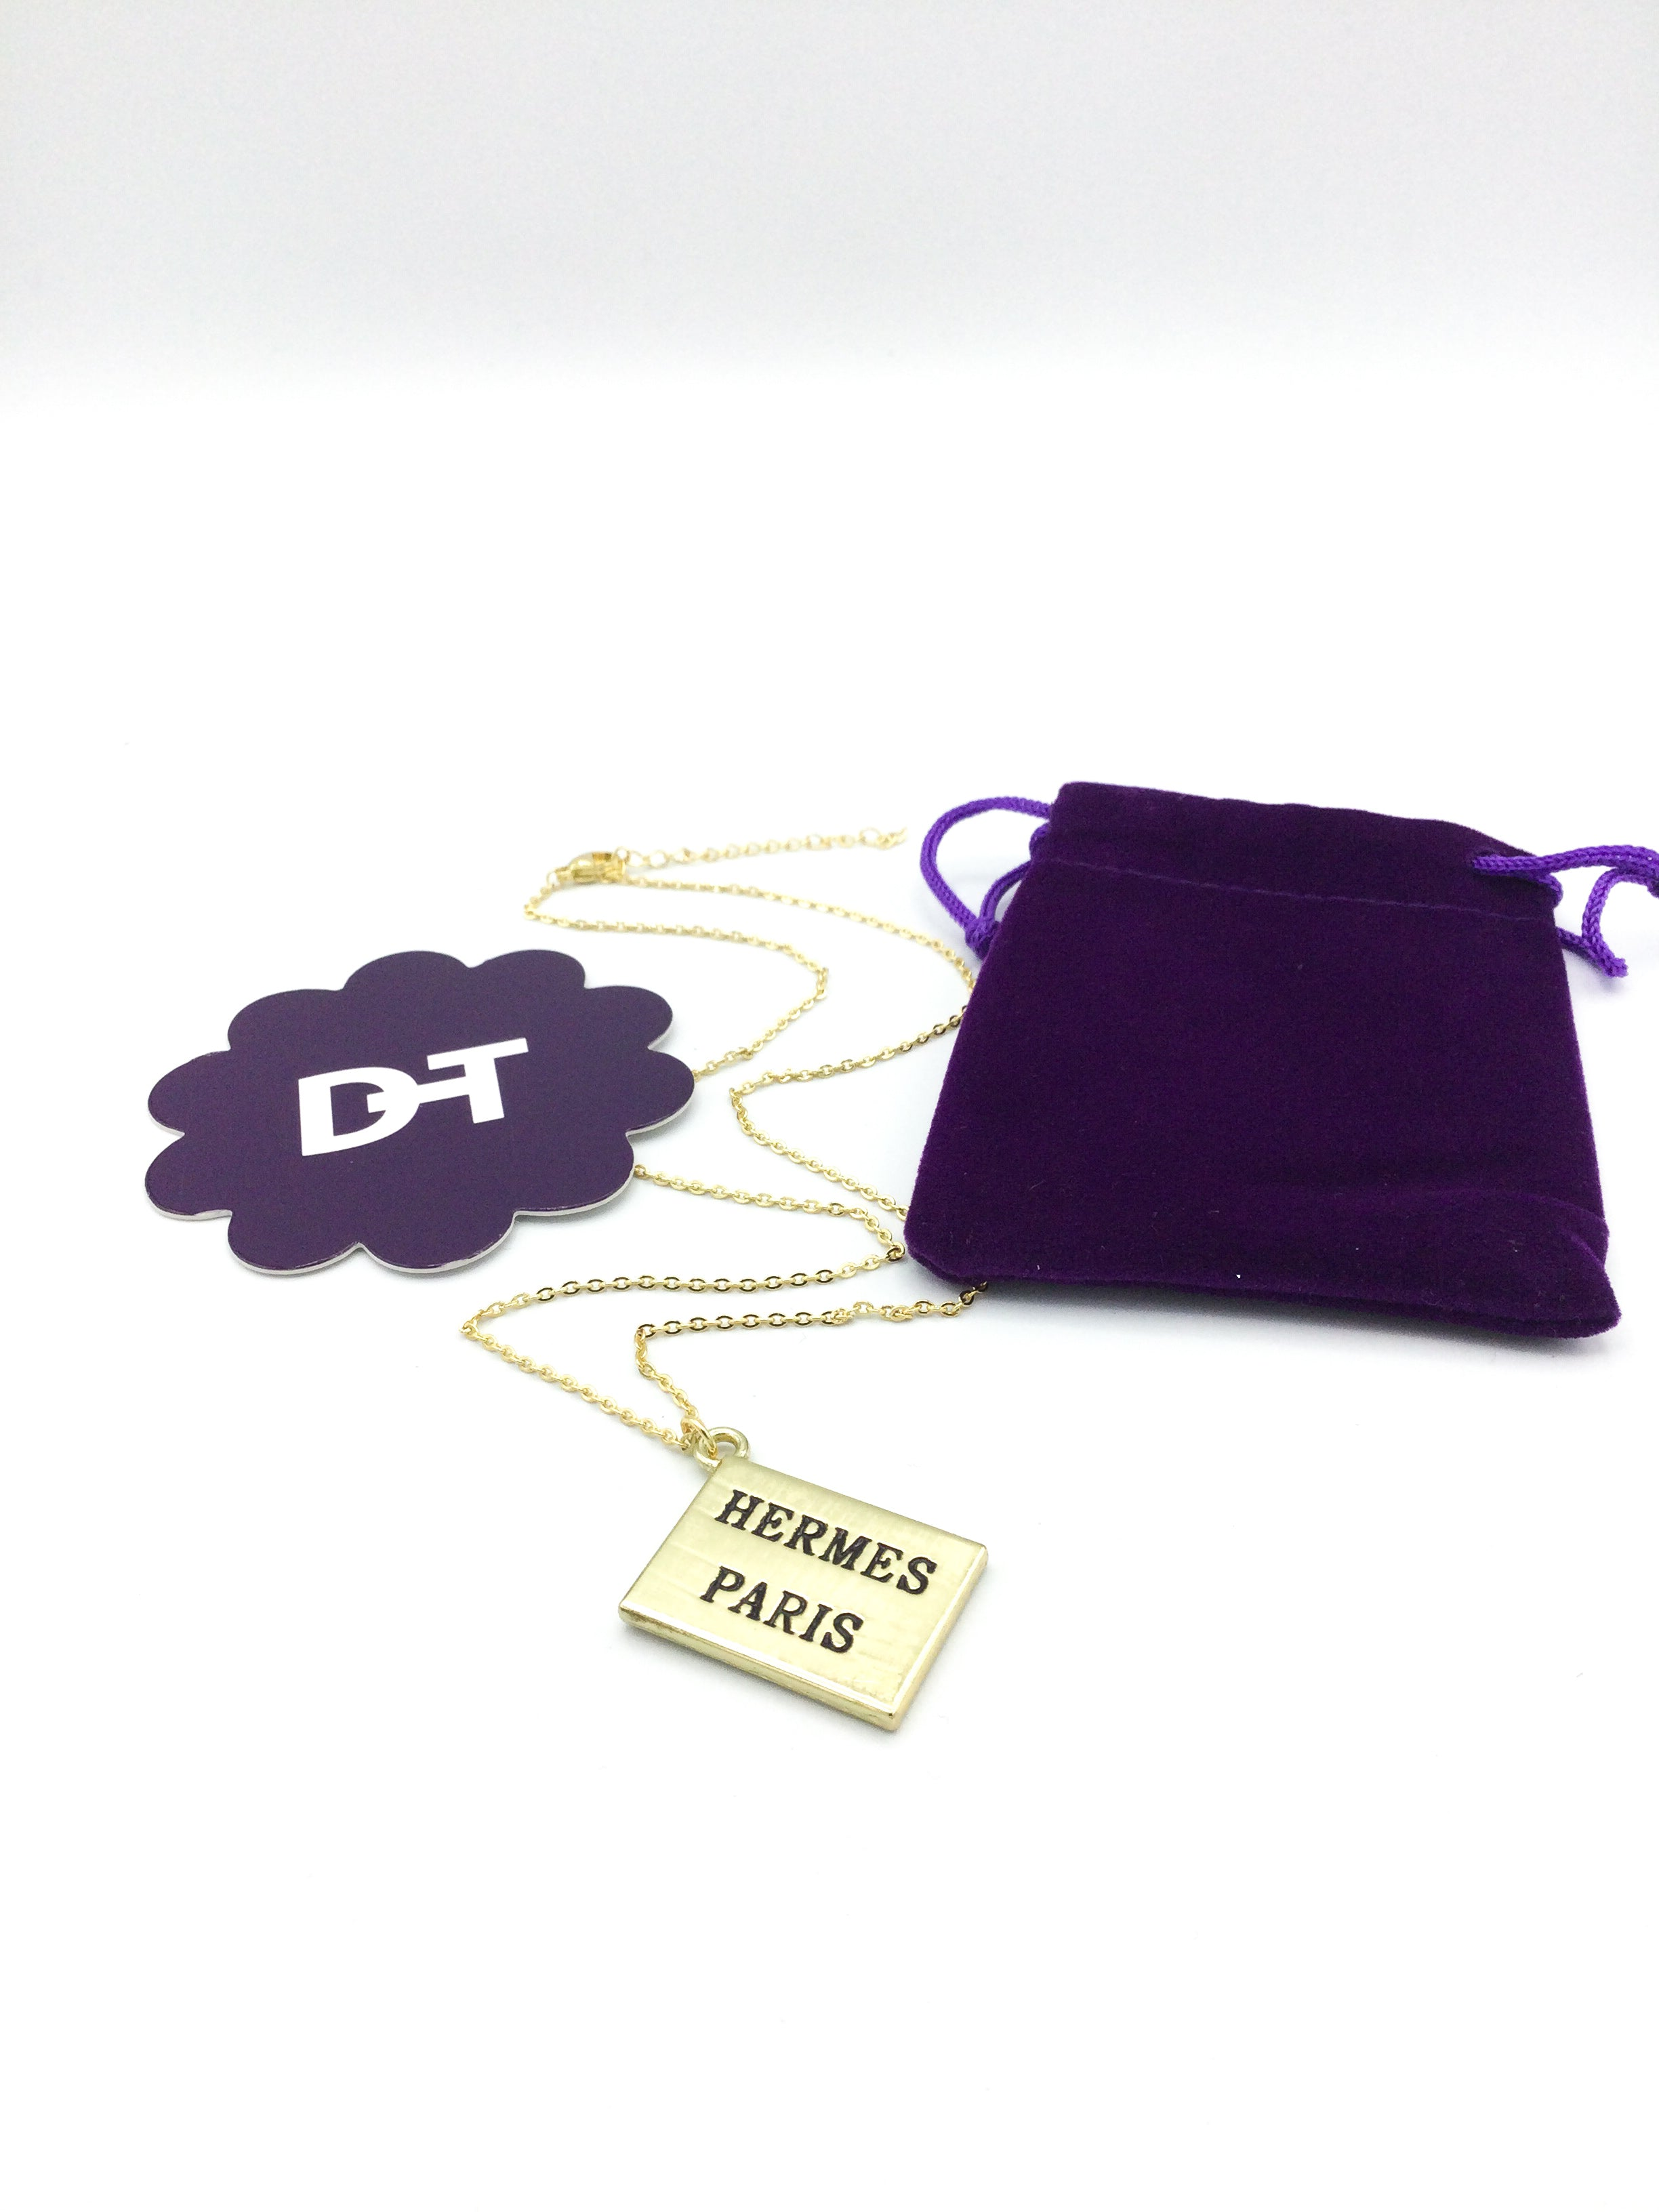 Hermes Bag Charm Necklace by Designer Therapy